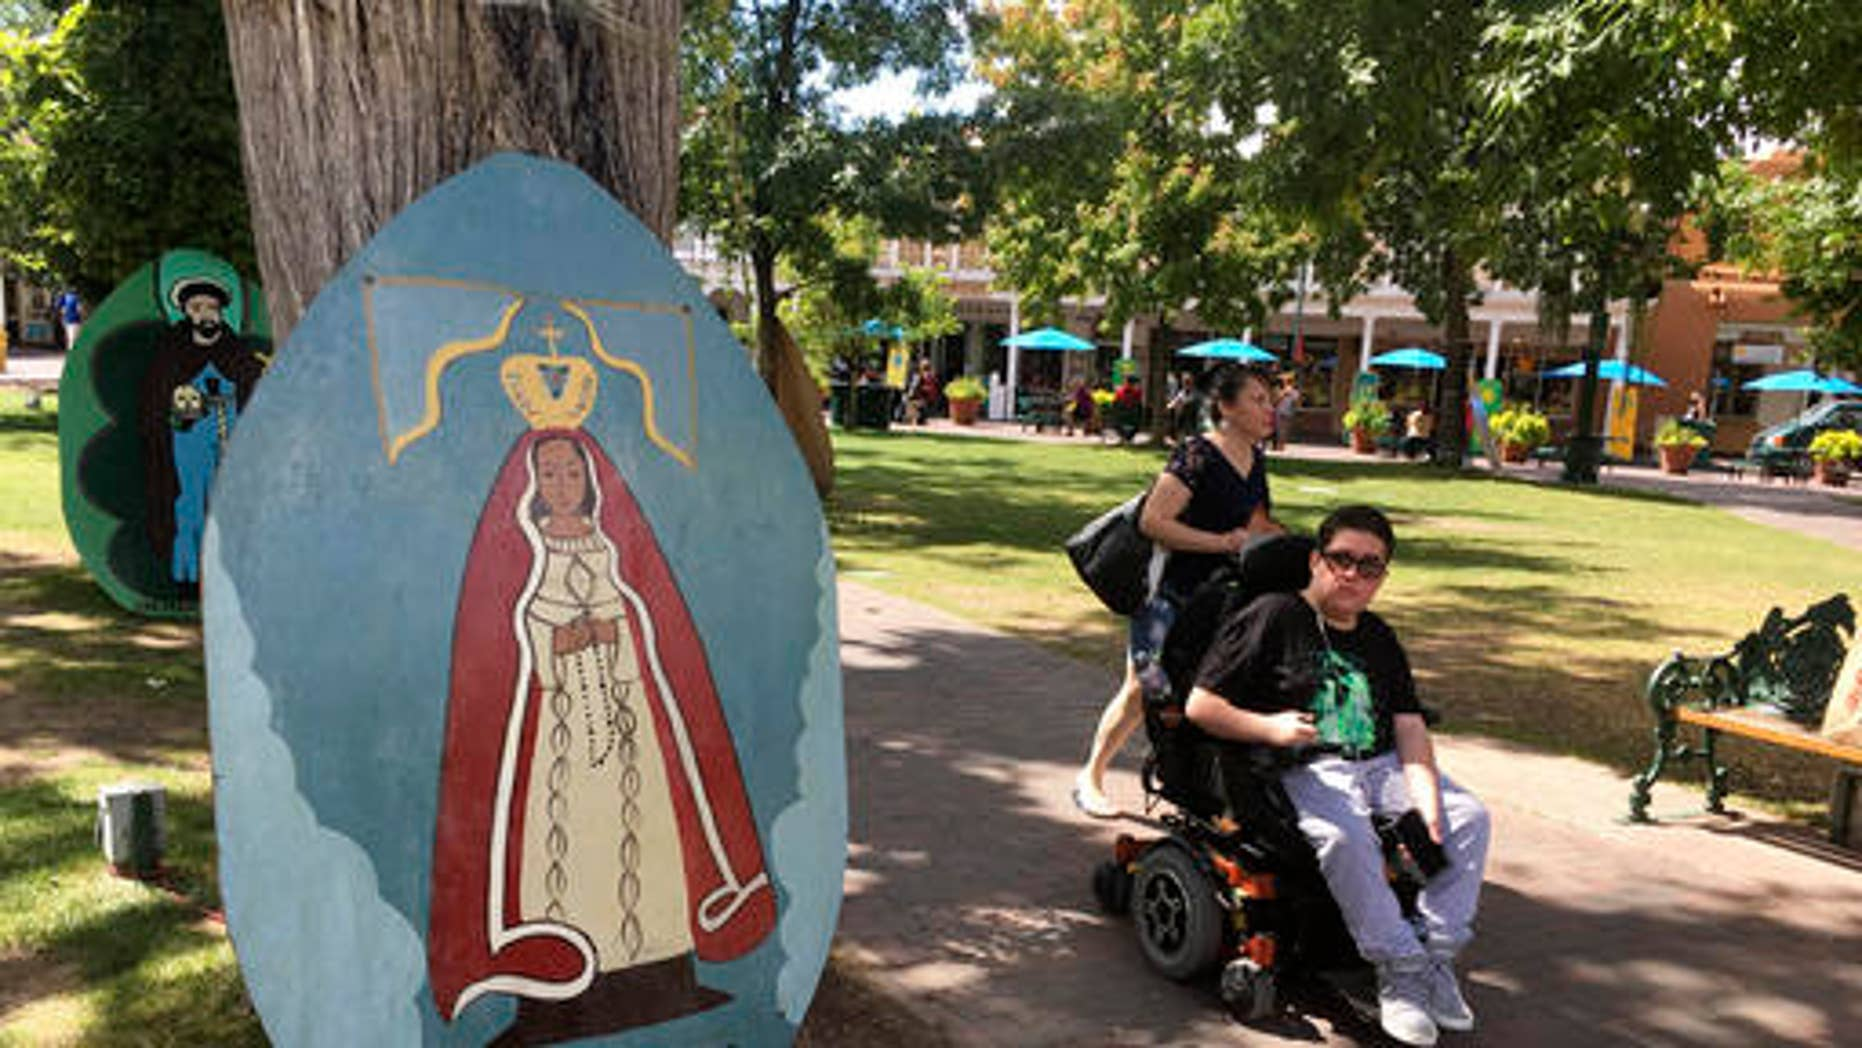 This Sept. 1, 2016 photo shows visitors of Santa Fe Plaza pass by an image of La Conquistadora, oldest statue of the Blessed Virgin Mary in the United States, as organizers prepare for the annual Santa Fe Fiesta.  For centuries, northern New Mexico Hispanic residents have held an elaborate festival in Santa Fe in honor of Spanish conquistador Don Diego De Vargasâ who reclaimed the city following an American Indian revolt.  But after 301 years, an emboldened group of Native American activists say itâs time to change a celebration centered around the conquest of New Mexicoâs Pueblo tribes.  (AP Photo/Russell Contreras)